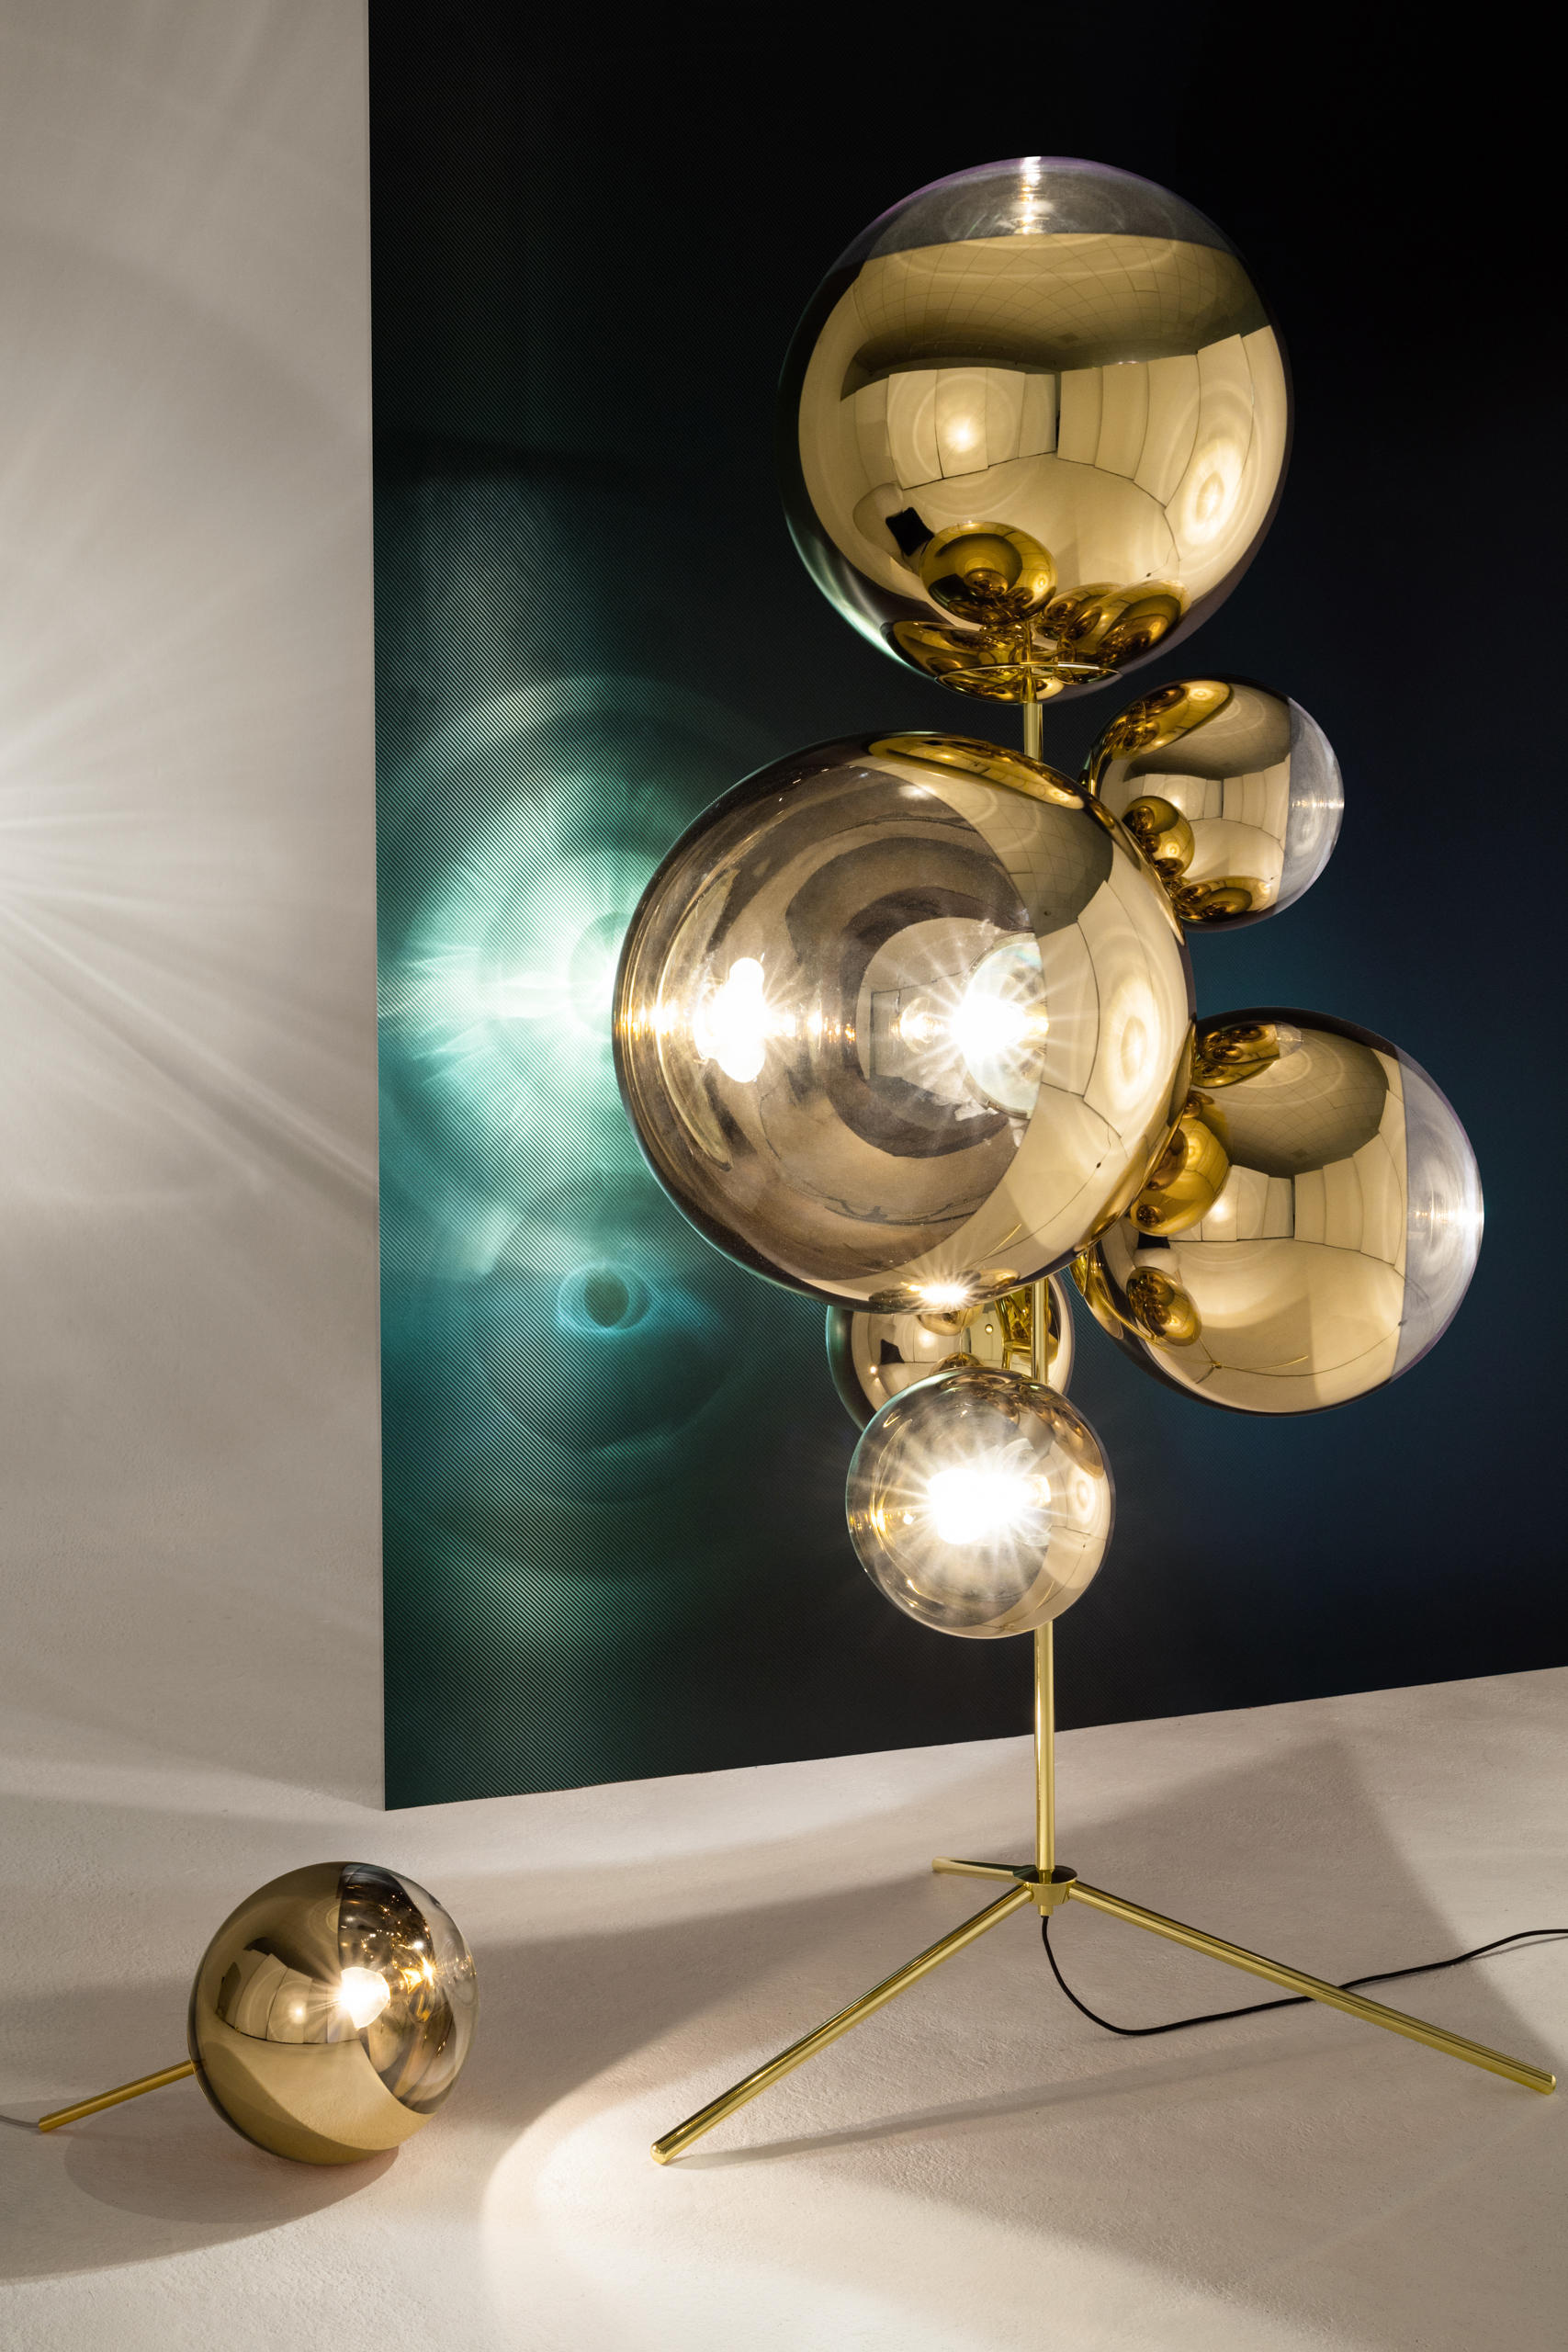 mirror ball gold stand chandelier general lighting from tom dixon architonic. Black Bedroom Furniture Sets. Home Design Ideas